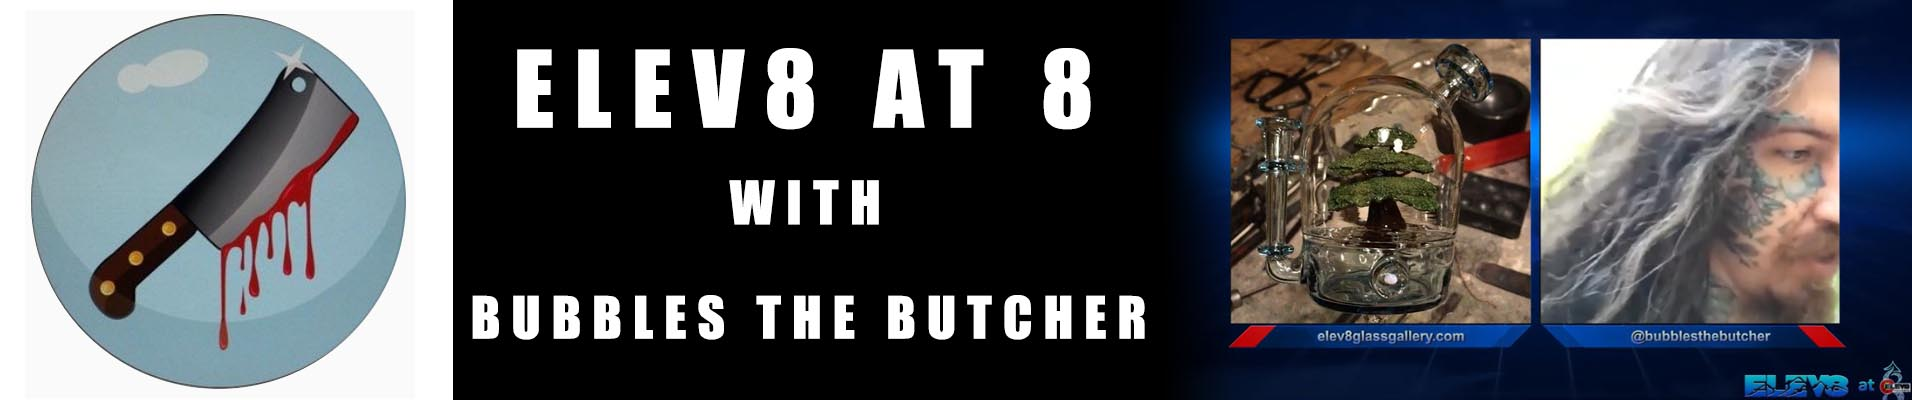 elev8-at-8-bubbles-the-butcher.jpg